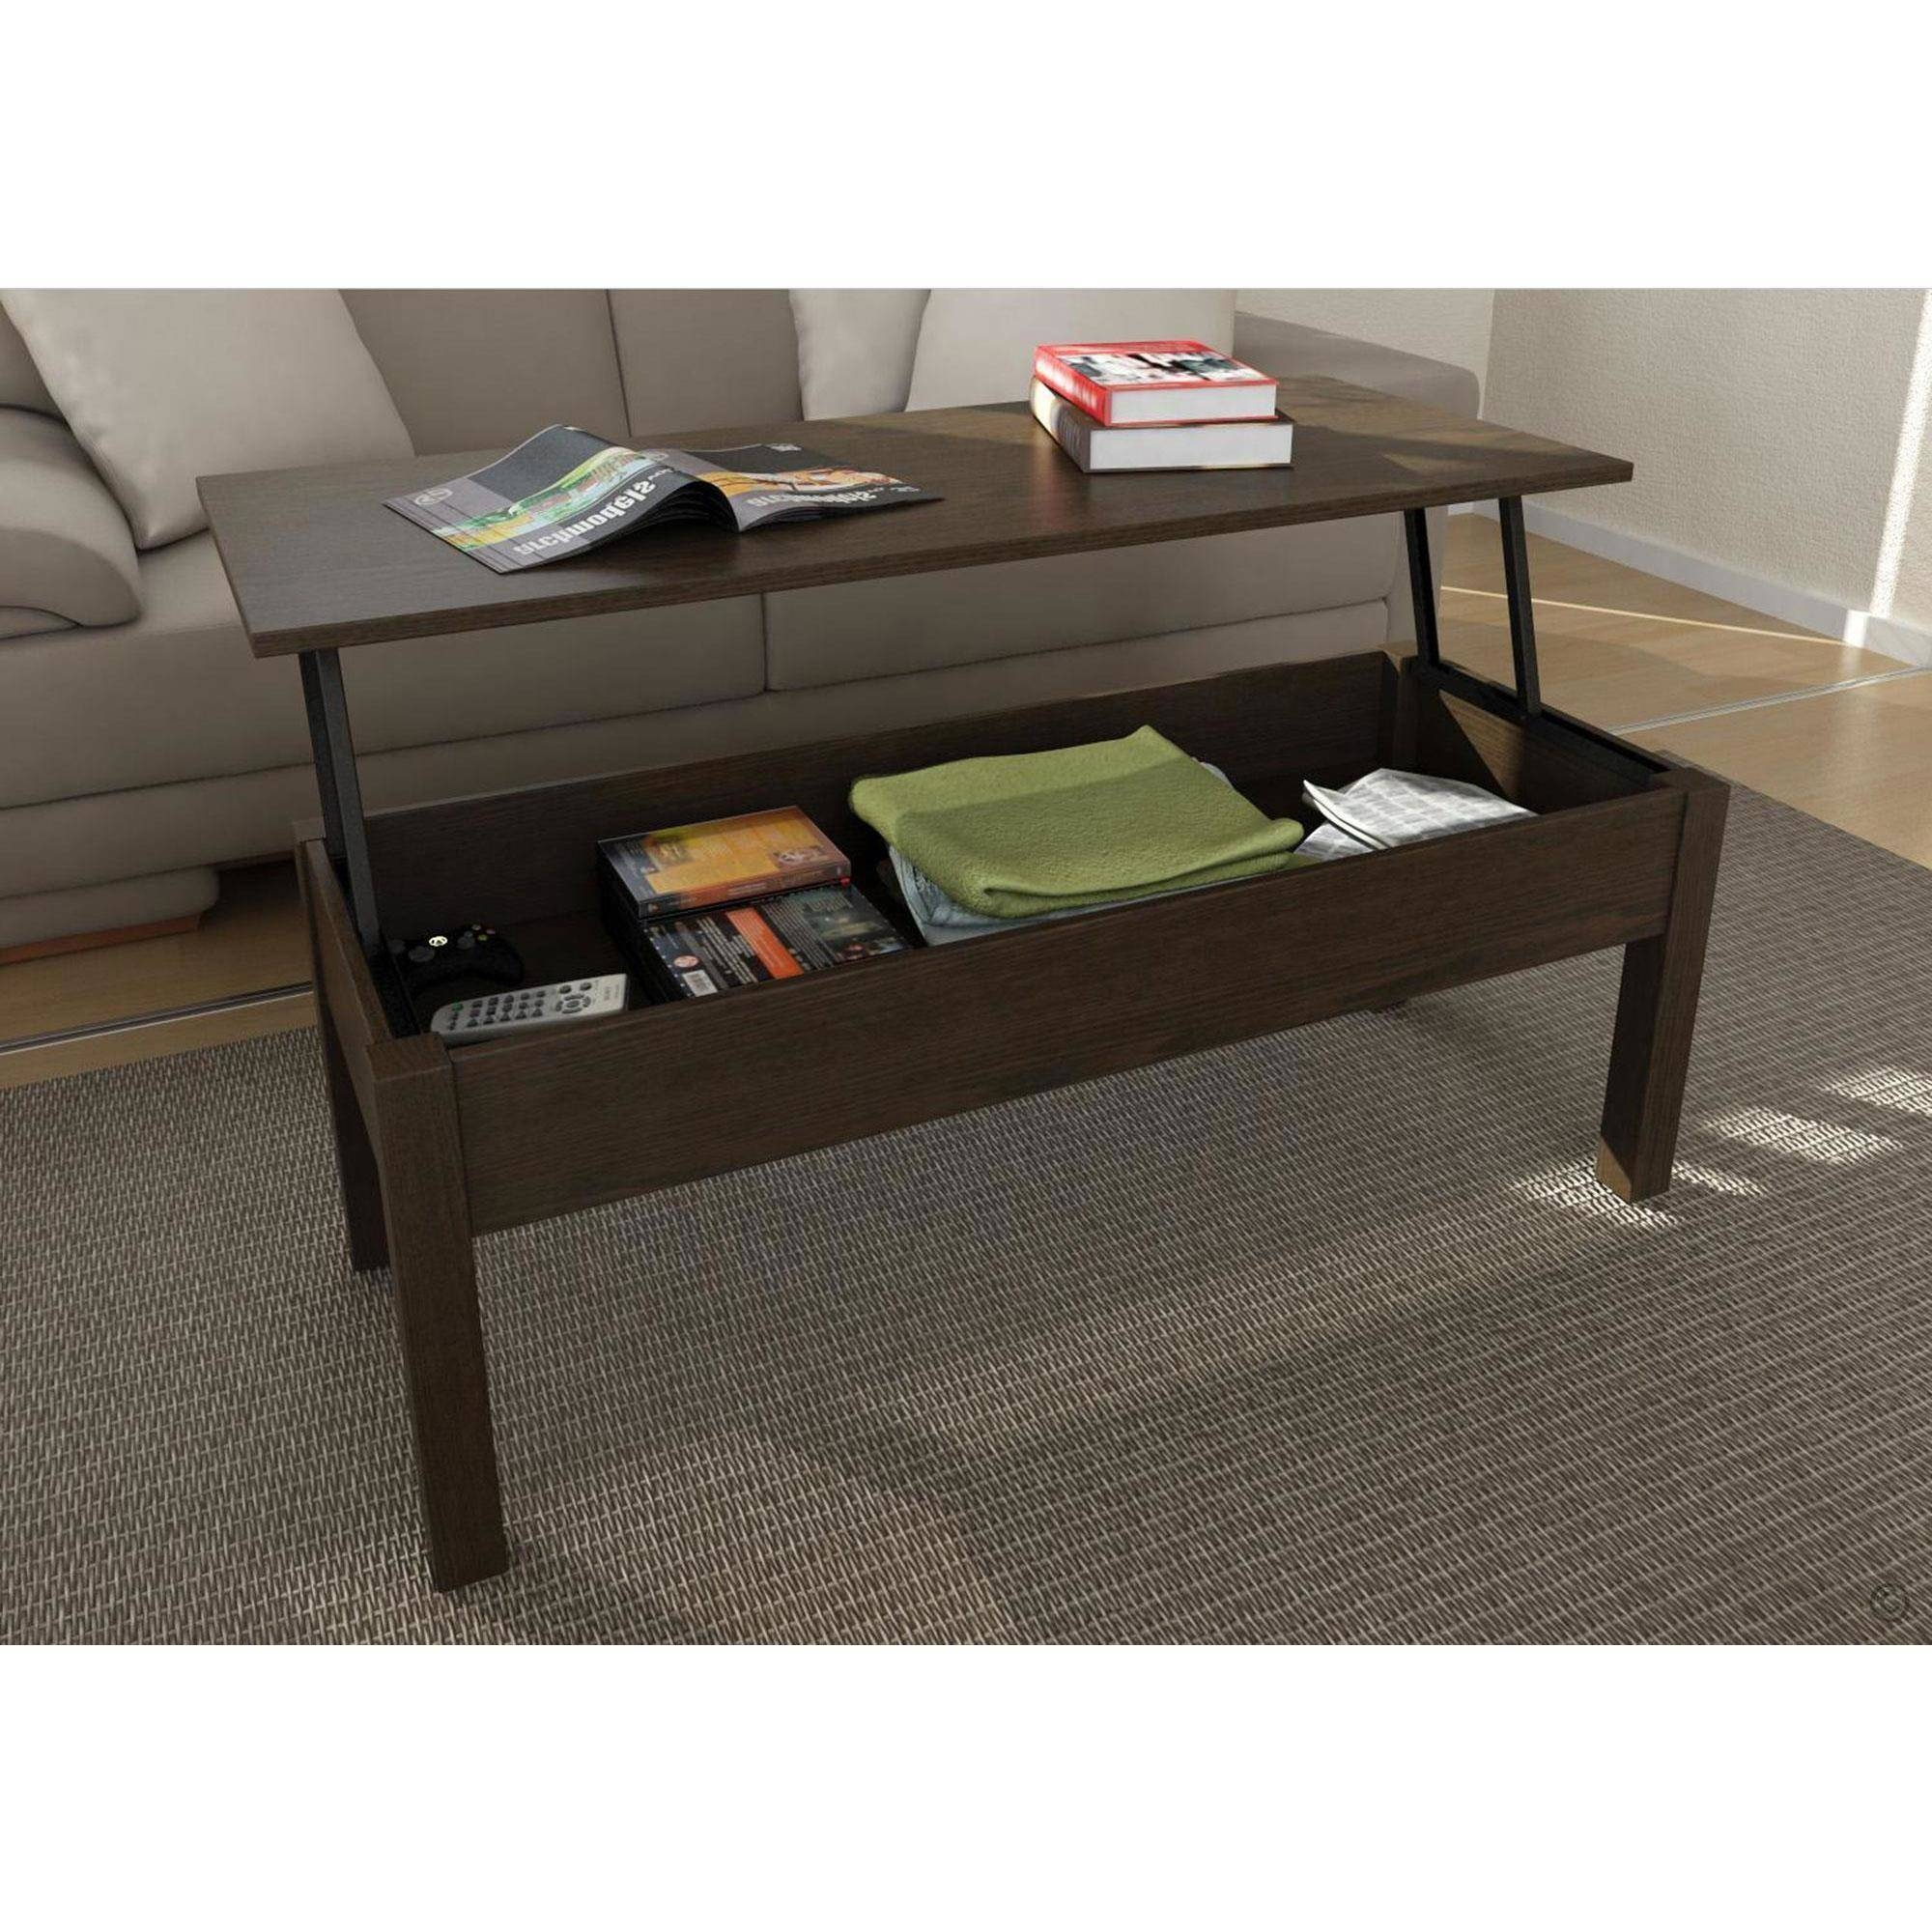 Mainstays Lift-Top Coffee Table, Multiple Colors - Walmart inside Lift Up Coffee Tables (Image 22 of 30)